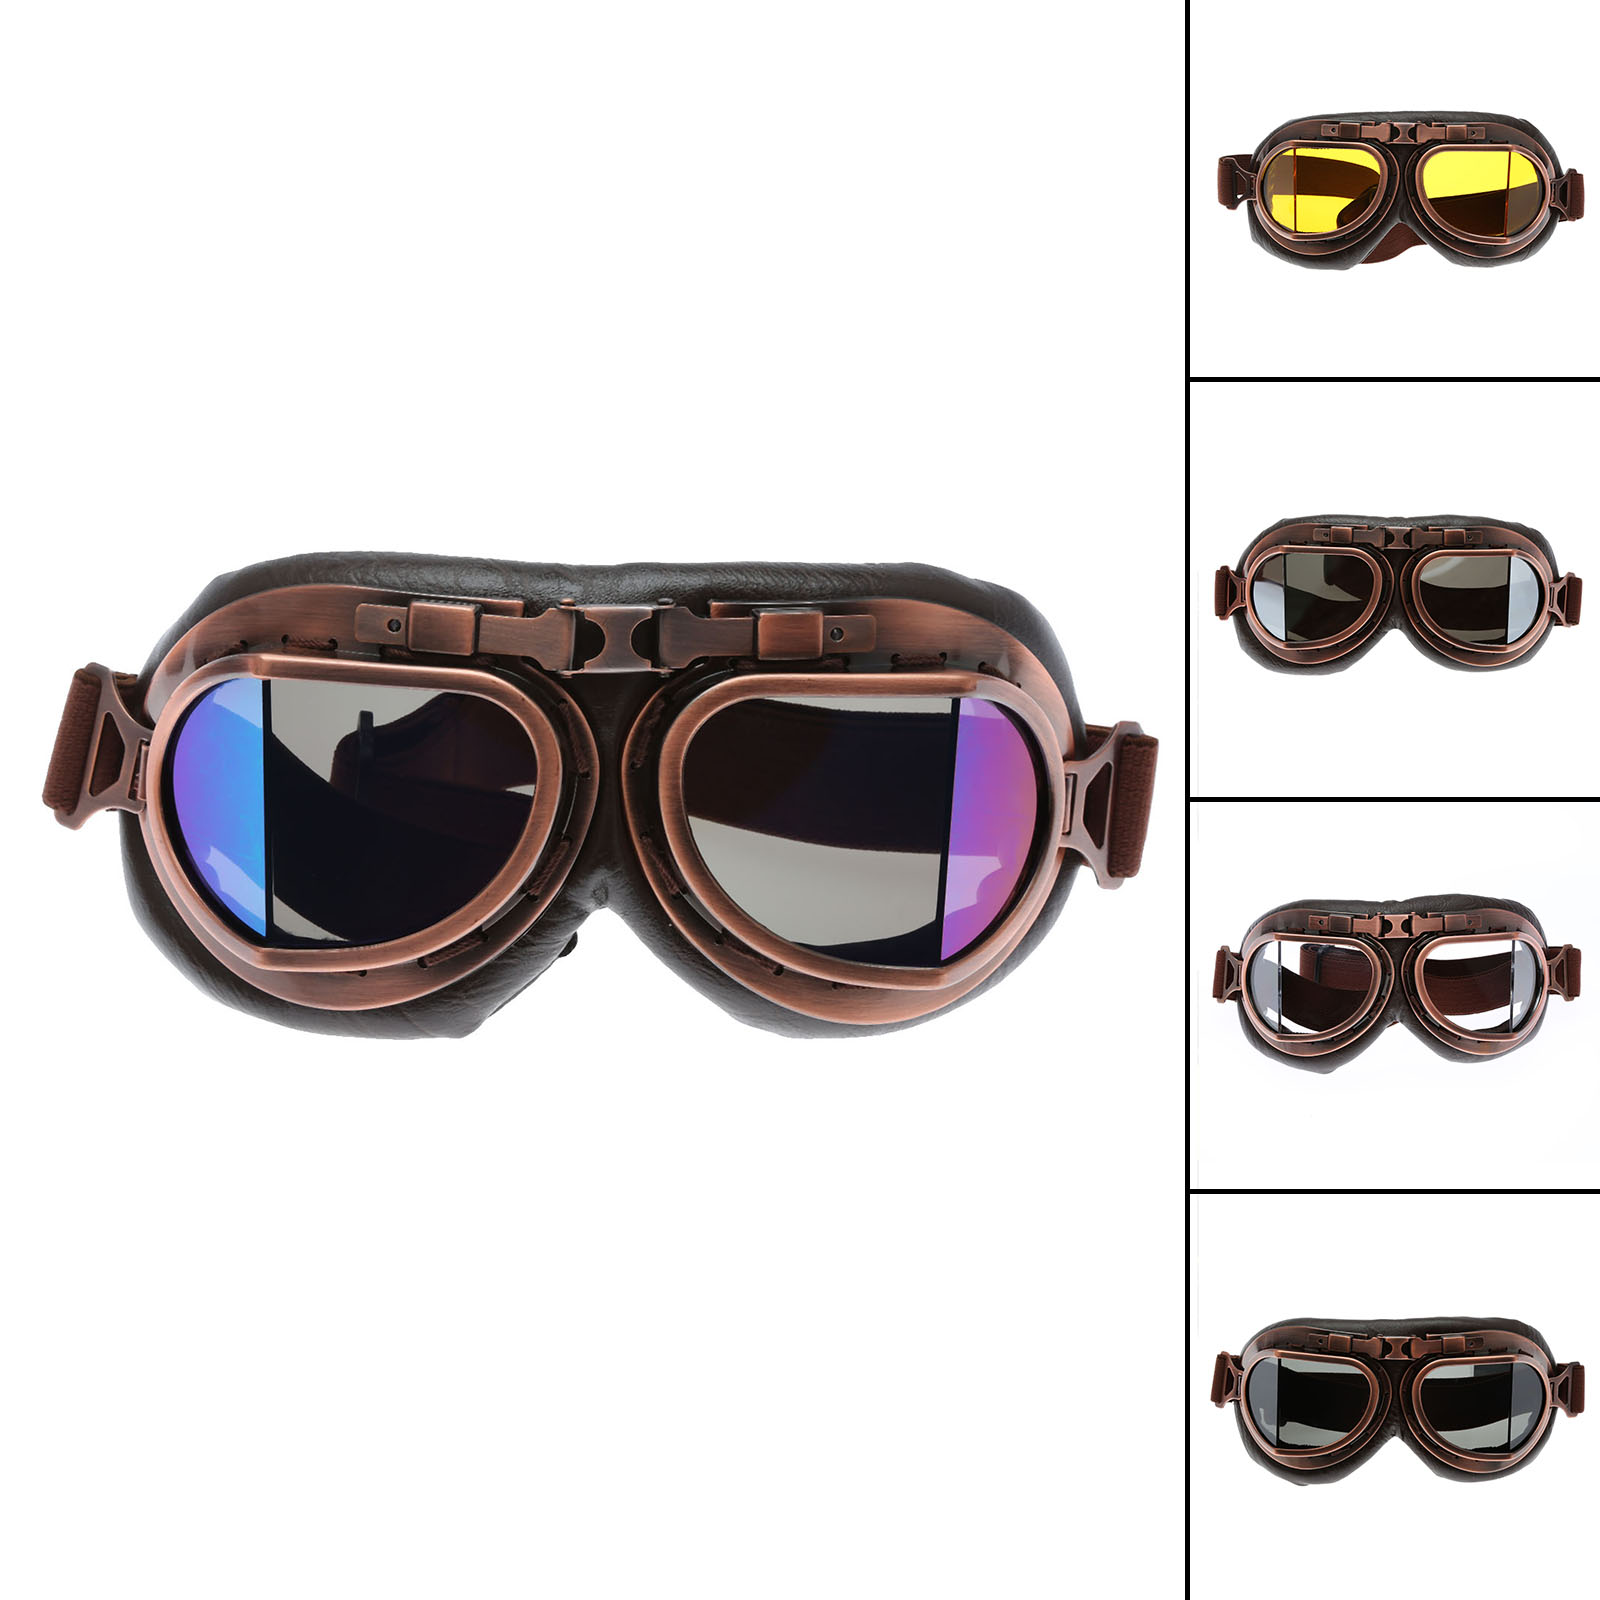 Motorcycle Goggles Glasses Vintage Motocross Classic Goggles Retro Aviator Pilot Cruiser Steampunk ATV Bike UV Protection